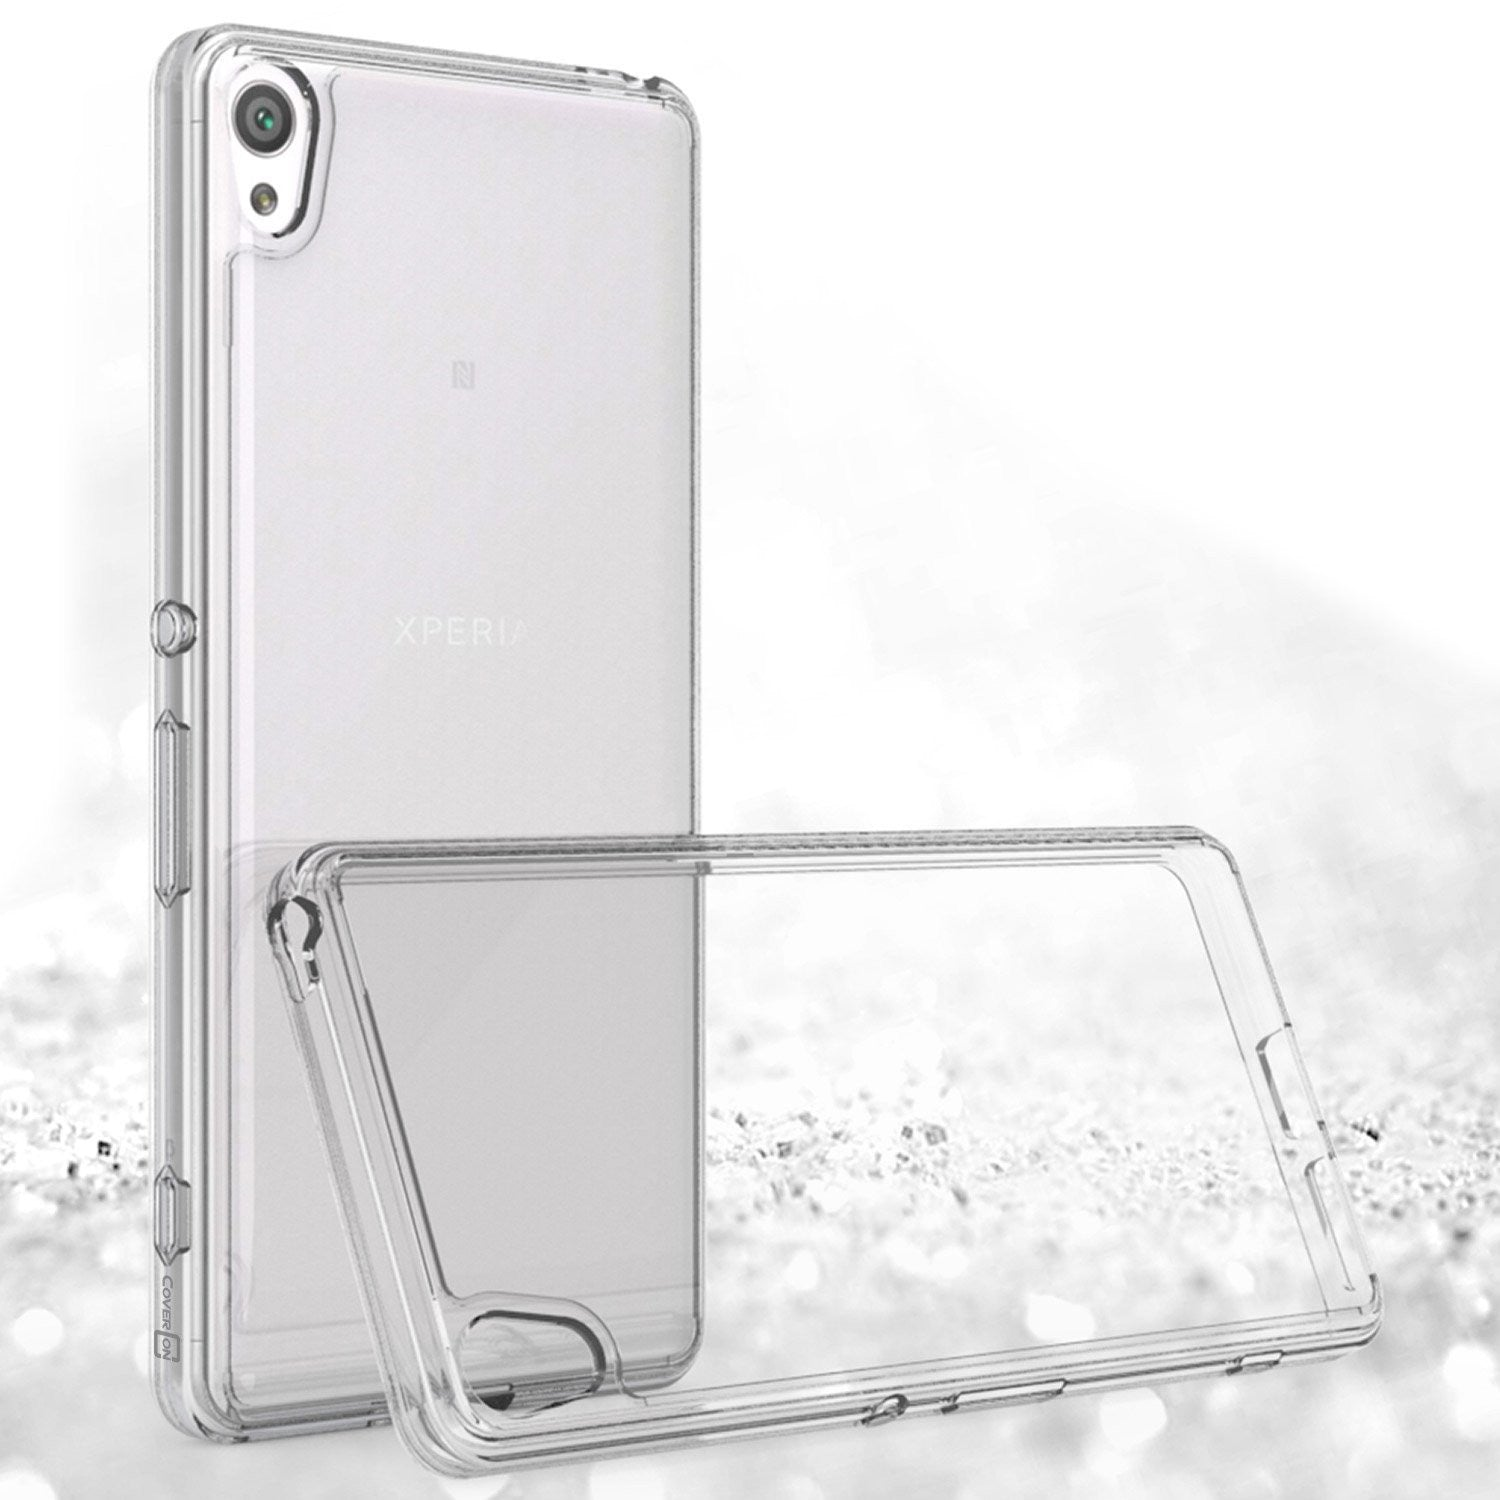 Crystal Clear Acrylic Plastic Back Panel and TPU Frame Stylish Phone Case for Sony Xperia XA